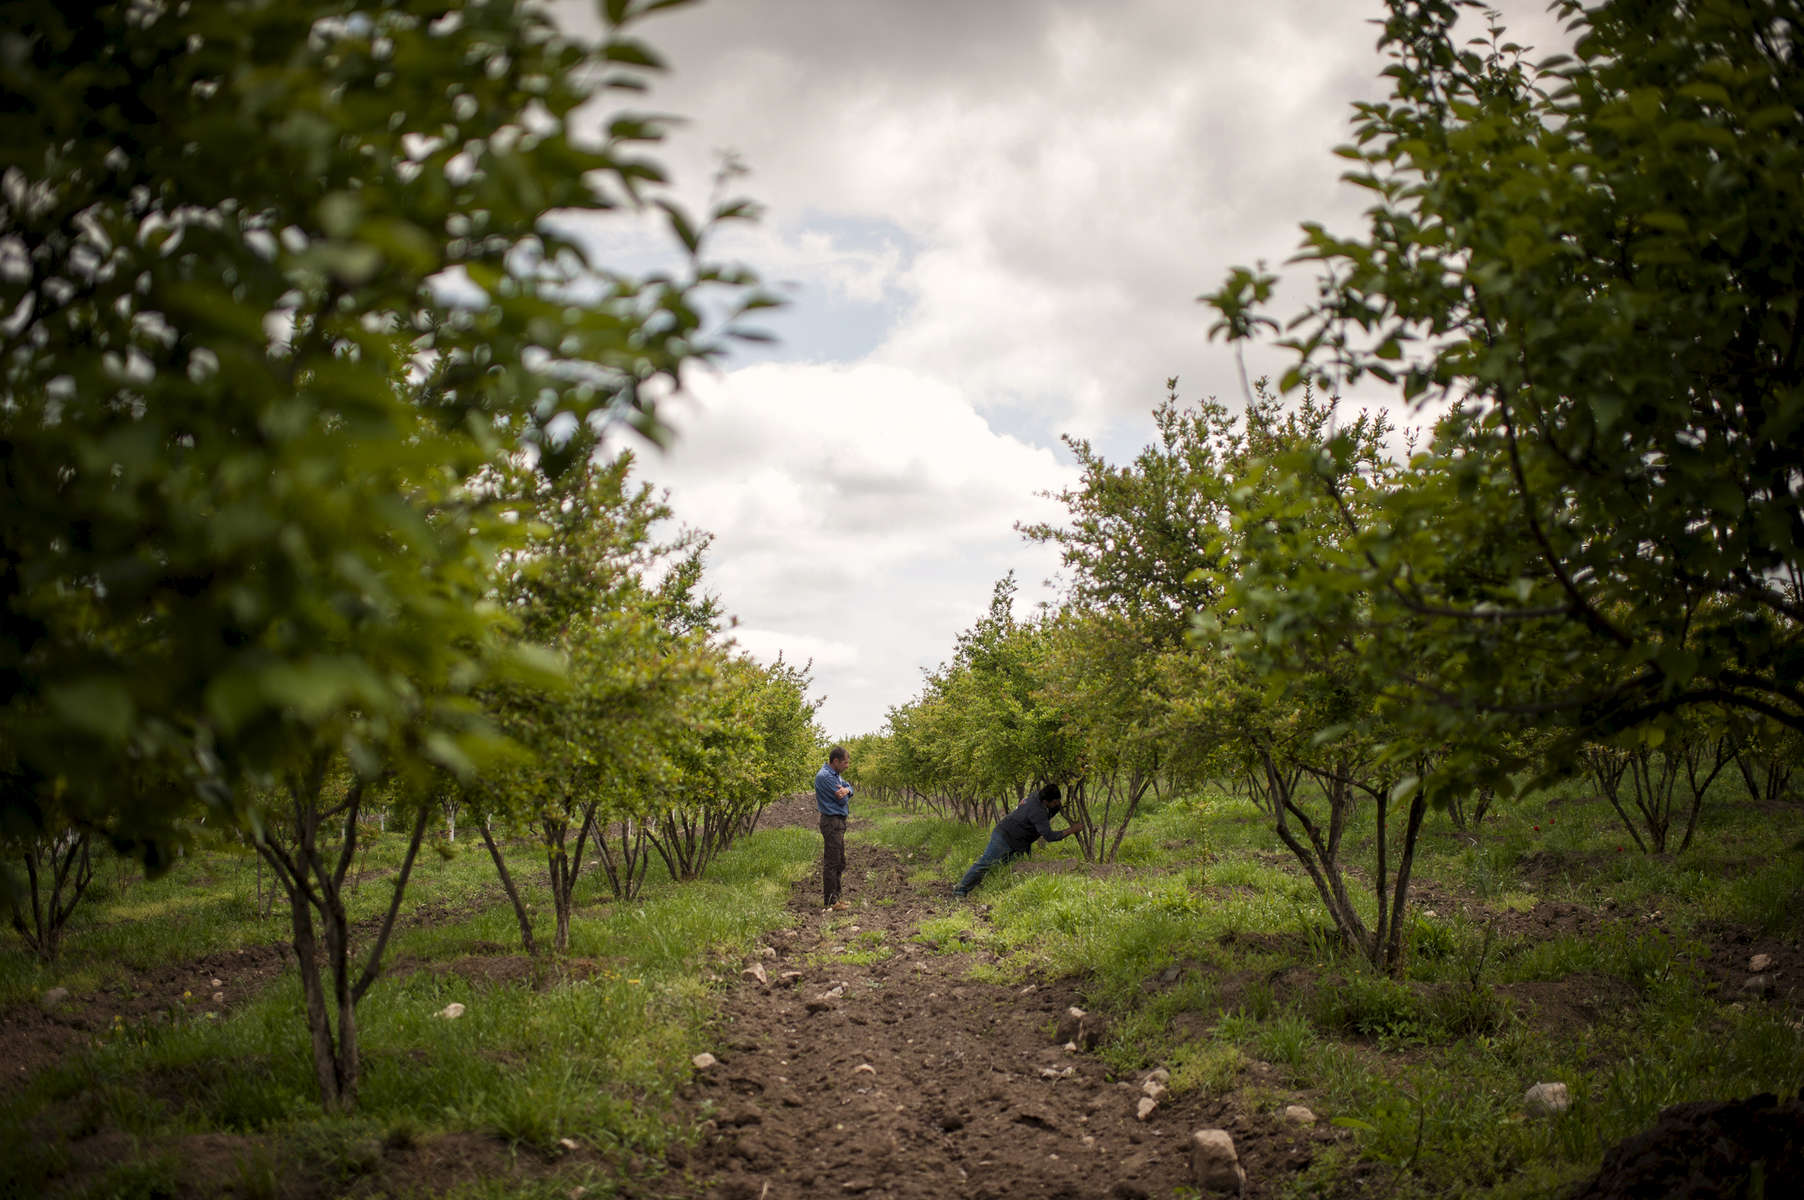 Beneficiaries Arthur Arzumanian and his partner Gohar tend their orchard in Shelly, during a visit from friend and HALO Supervisor Melord Aslanian.